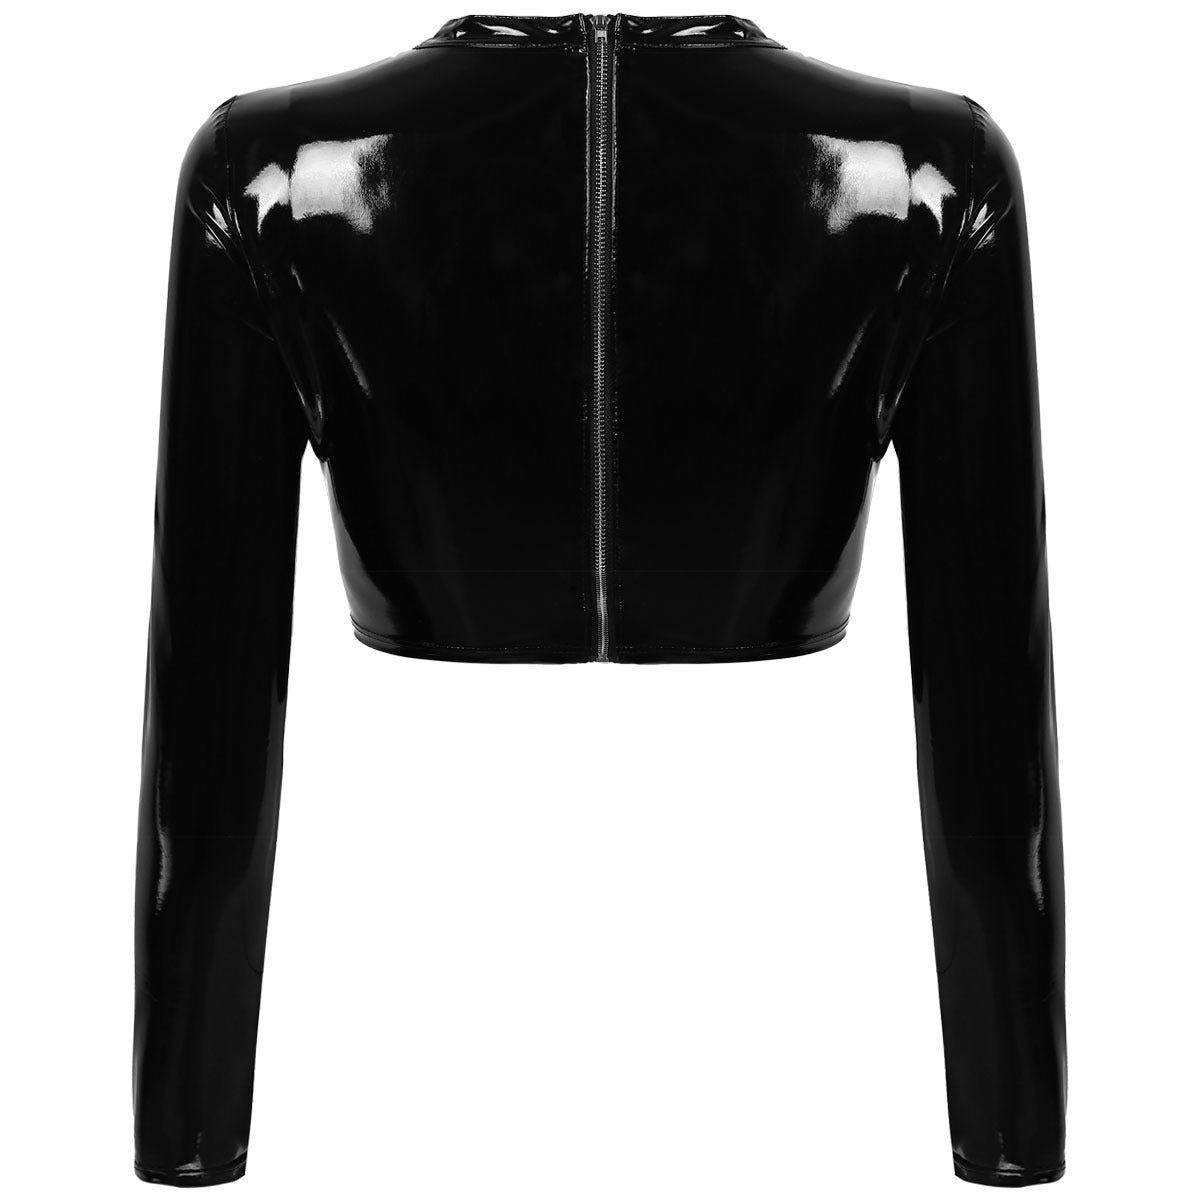 Women's Wet Look Fashion Tops / Patent Leather Hollow Out Front with Buckles Gothic Crop Top - HARD'N'HEAVY